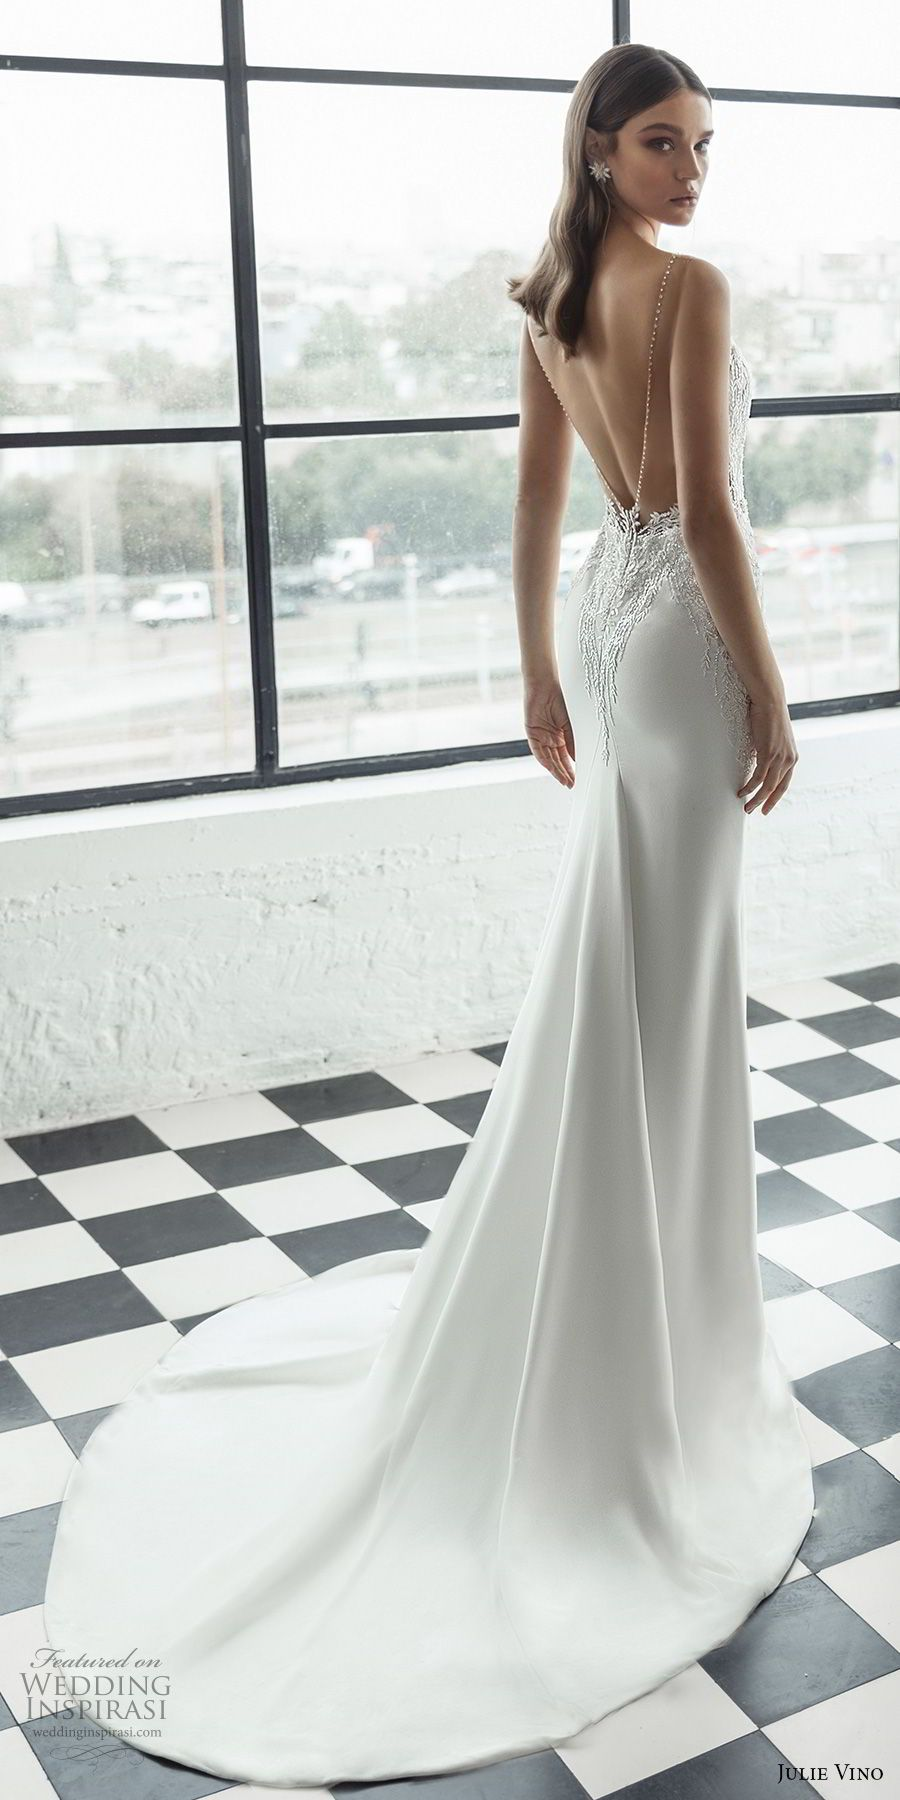 Julie Vino 2019 Romanzo Bridal Sleeveless Deep Plunging Sweetheart Neckline Heavily Embellished Bodice Fit And Flare Wedding Dress Low V Back